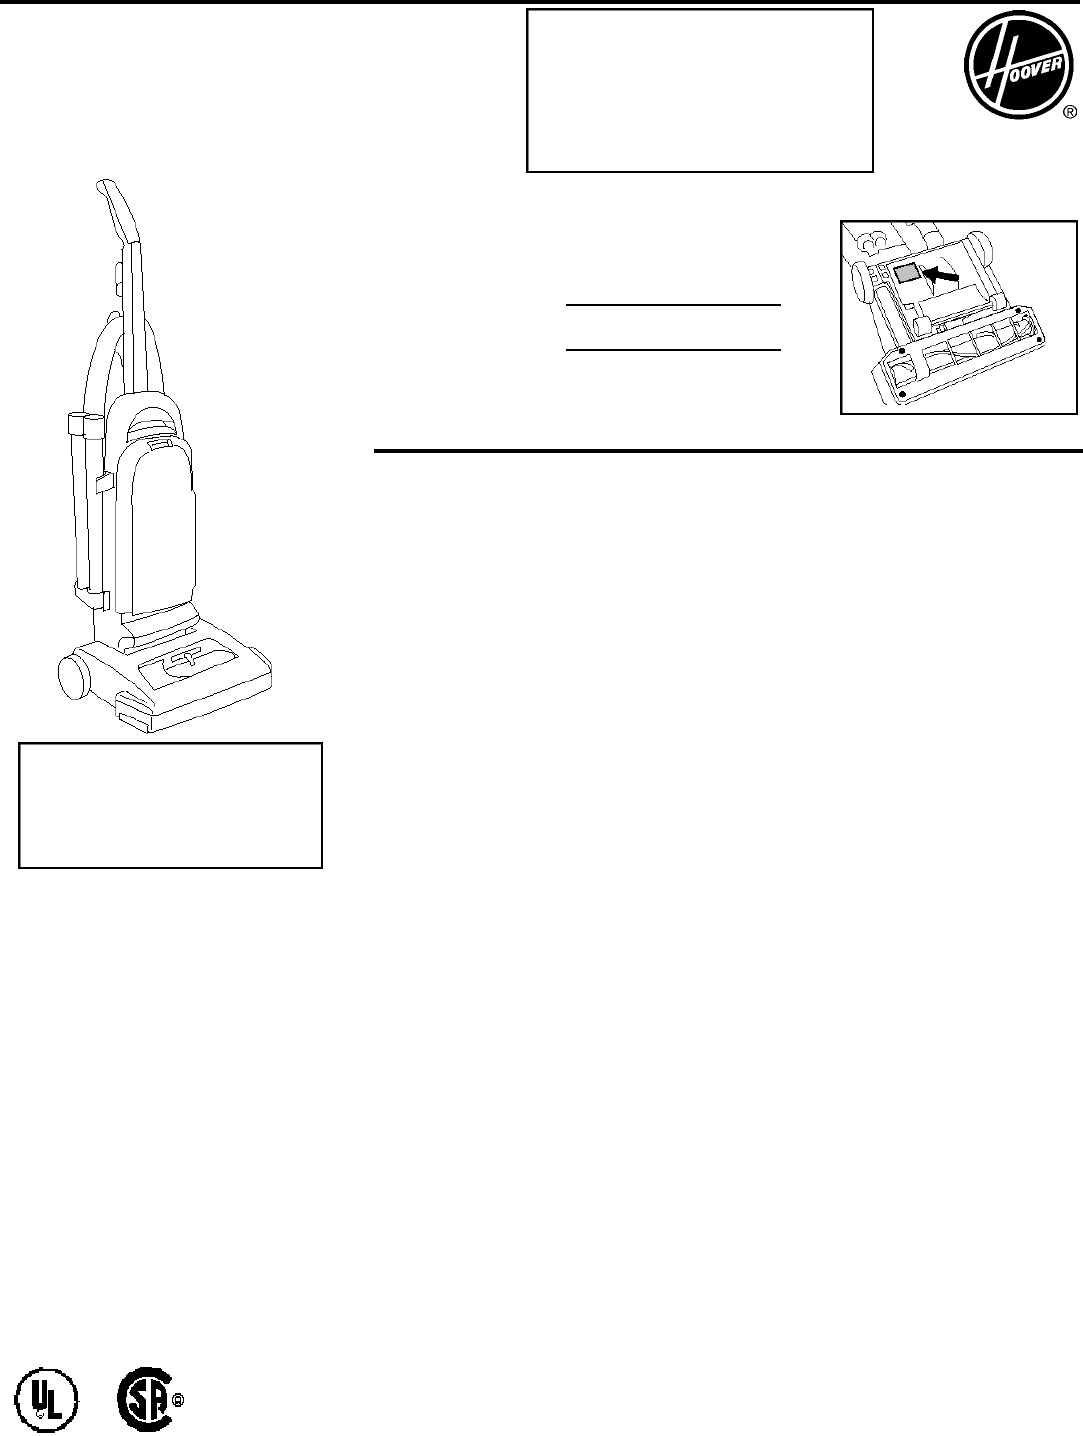 Page 13 of Hoover Vacuum Cleaner Wind Tunnel User Guide